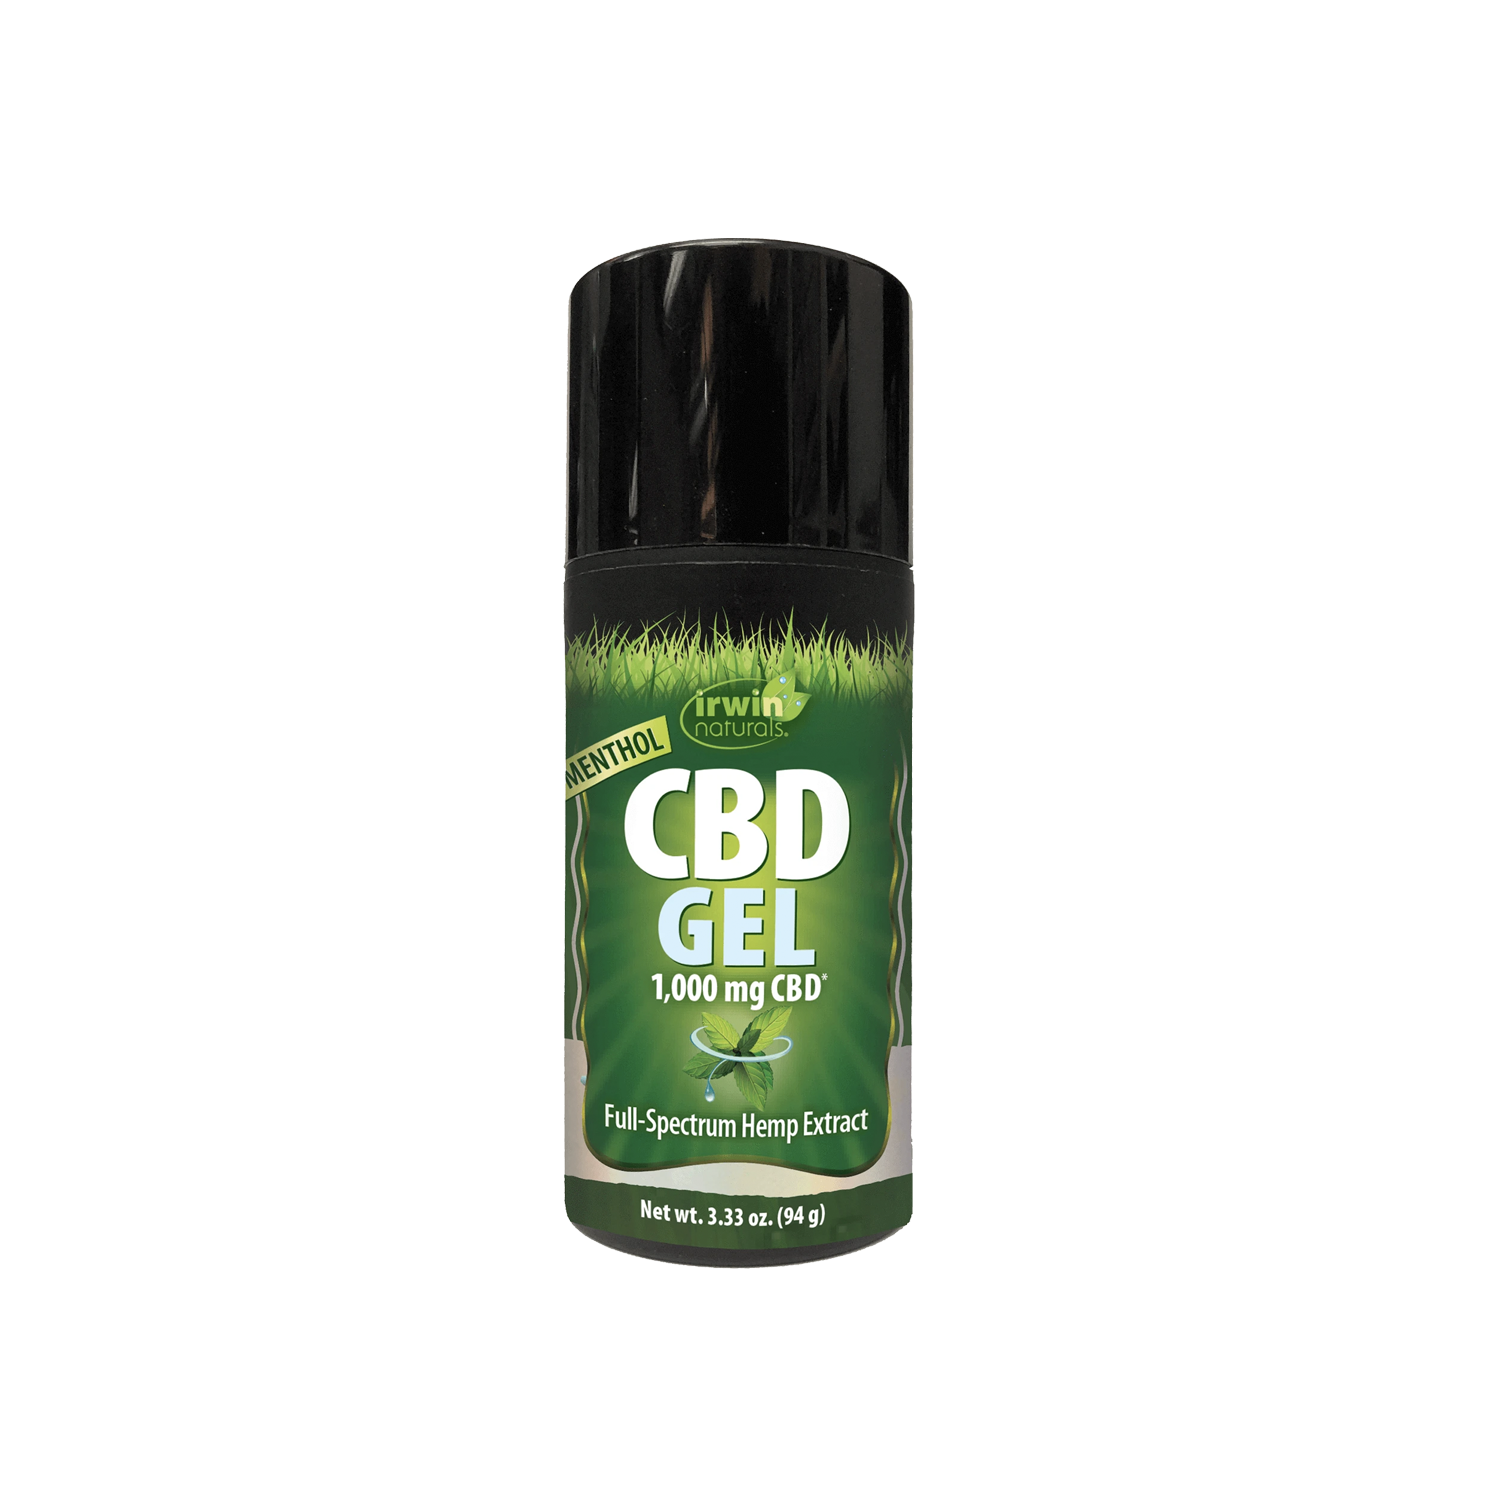 Irwin Naturals Topical | 1000mg Menthol CBD Gel - Full Spectrum CBD